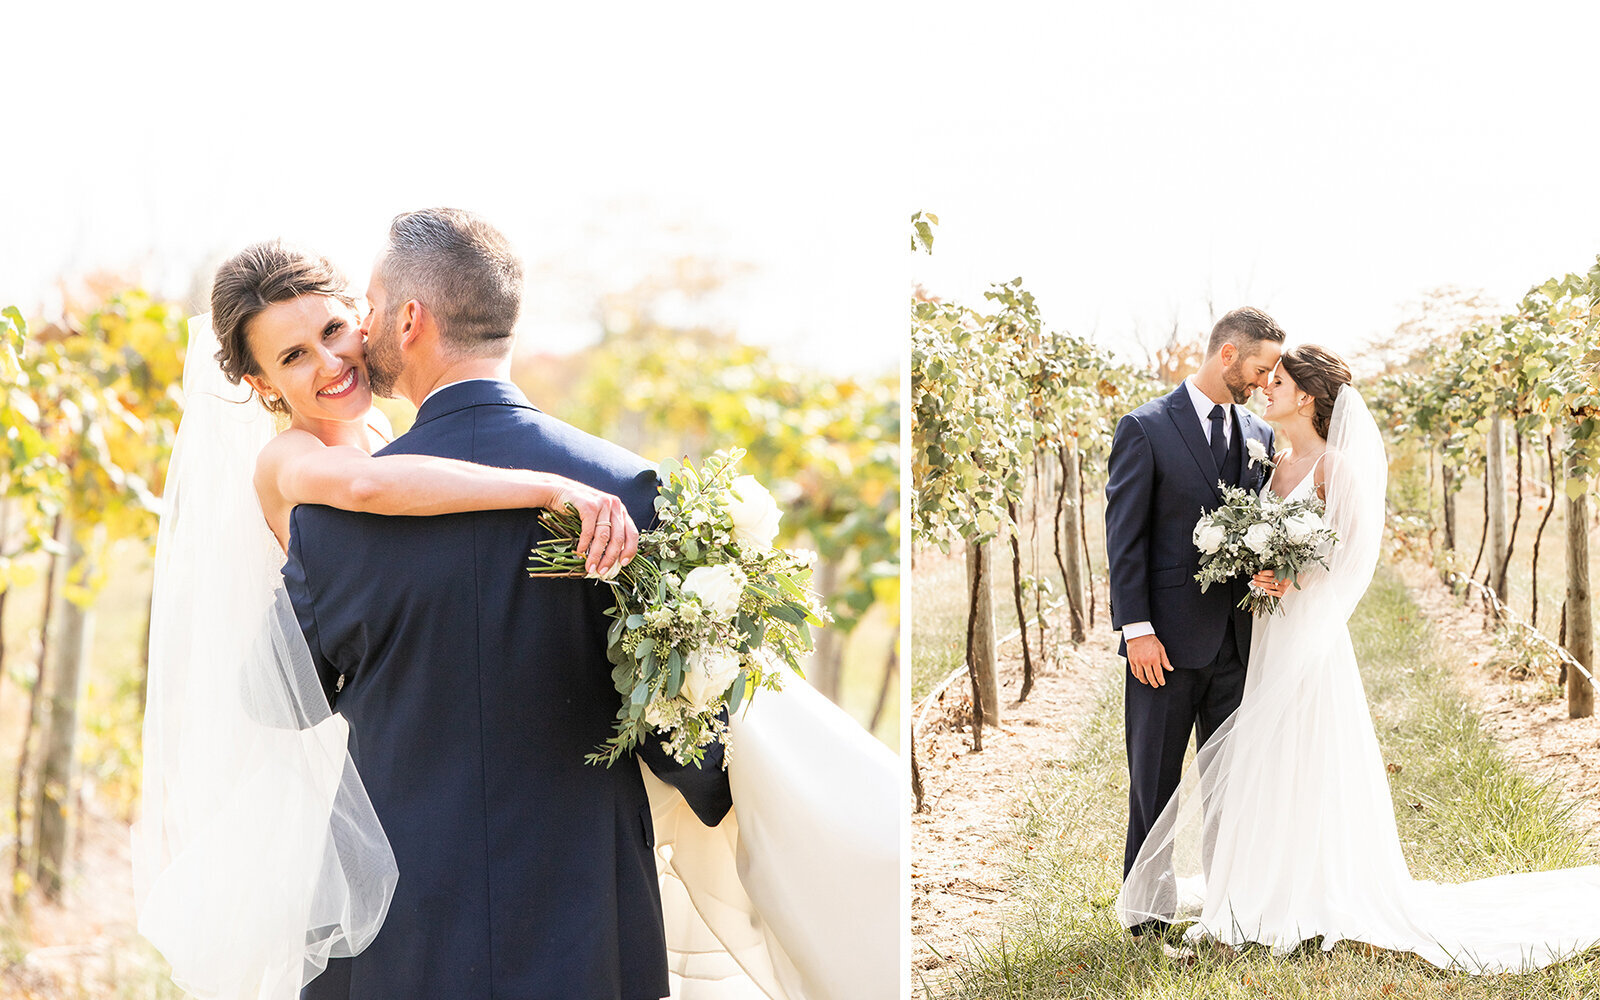 Studio1534_Daniels Vineyard_Wedding Day